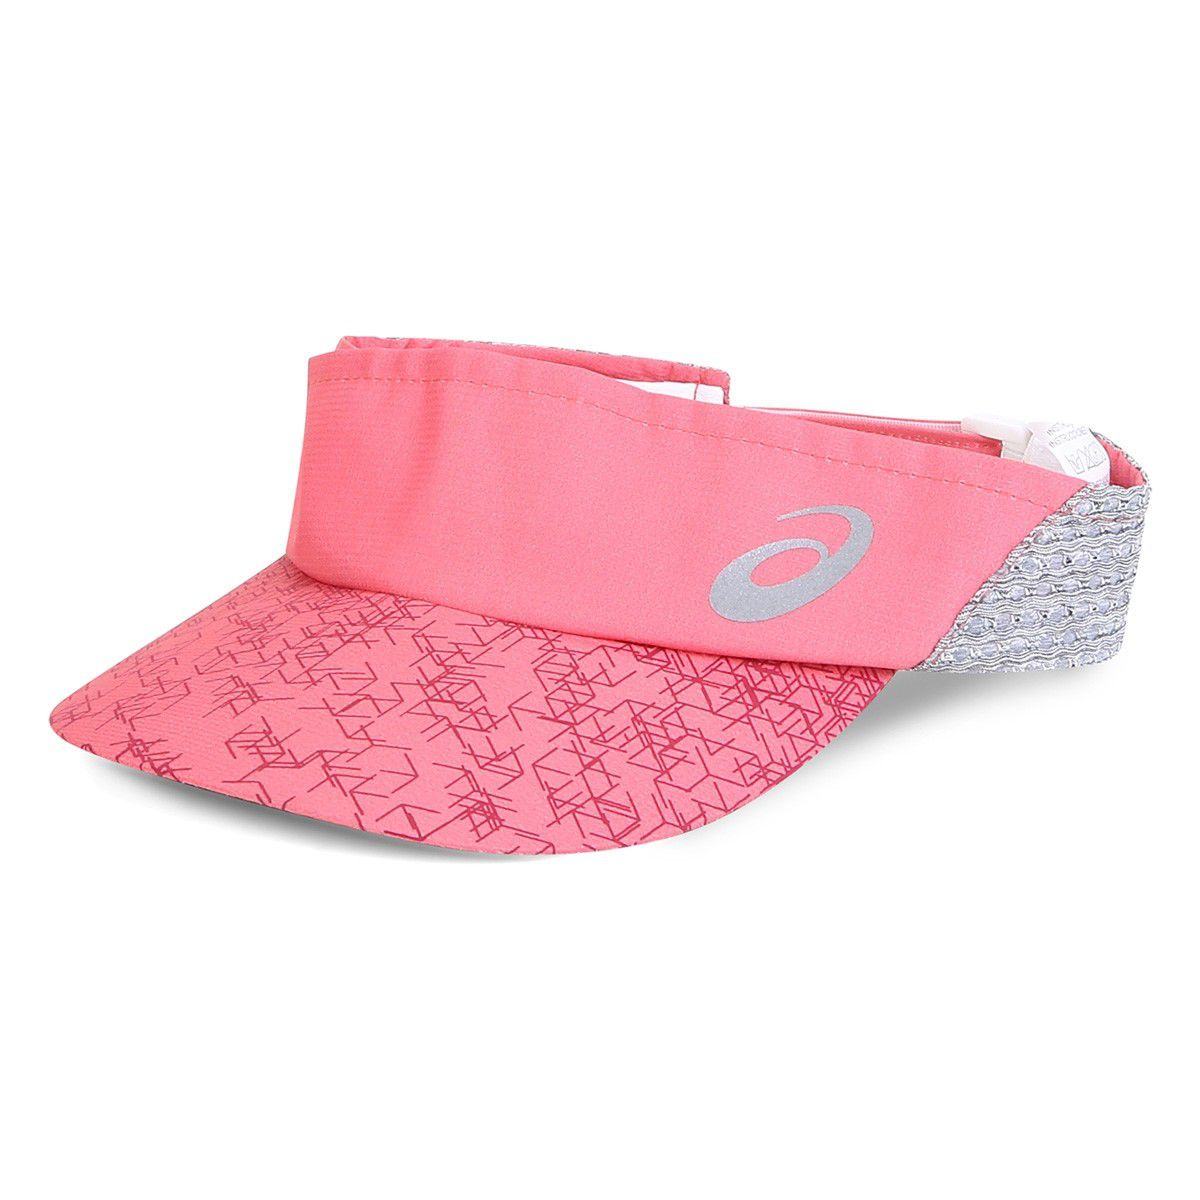 Viseira Asics Mad Mesh Visor - Bright Rose